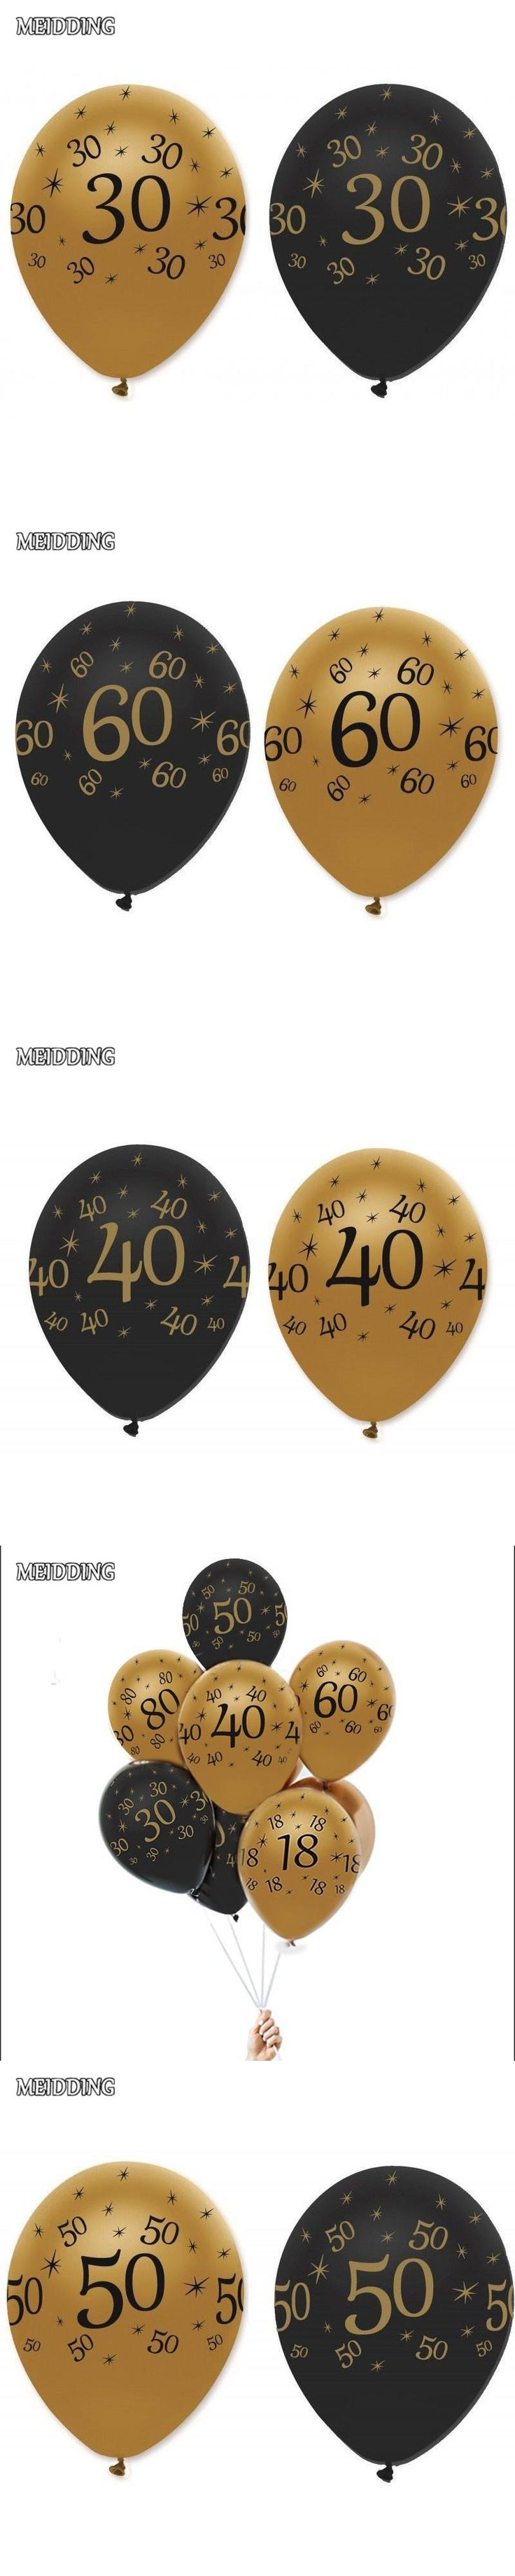 Letters In Latex%0A latex balloon for birthday Balloons decoration party supplies